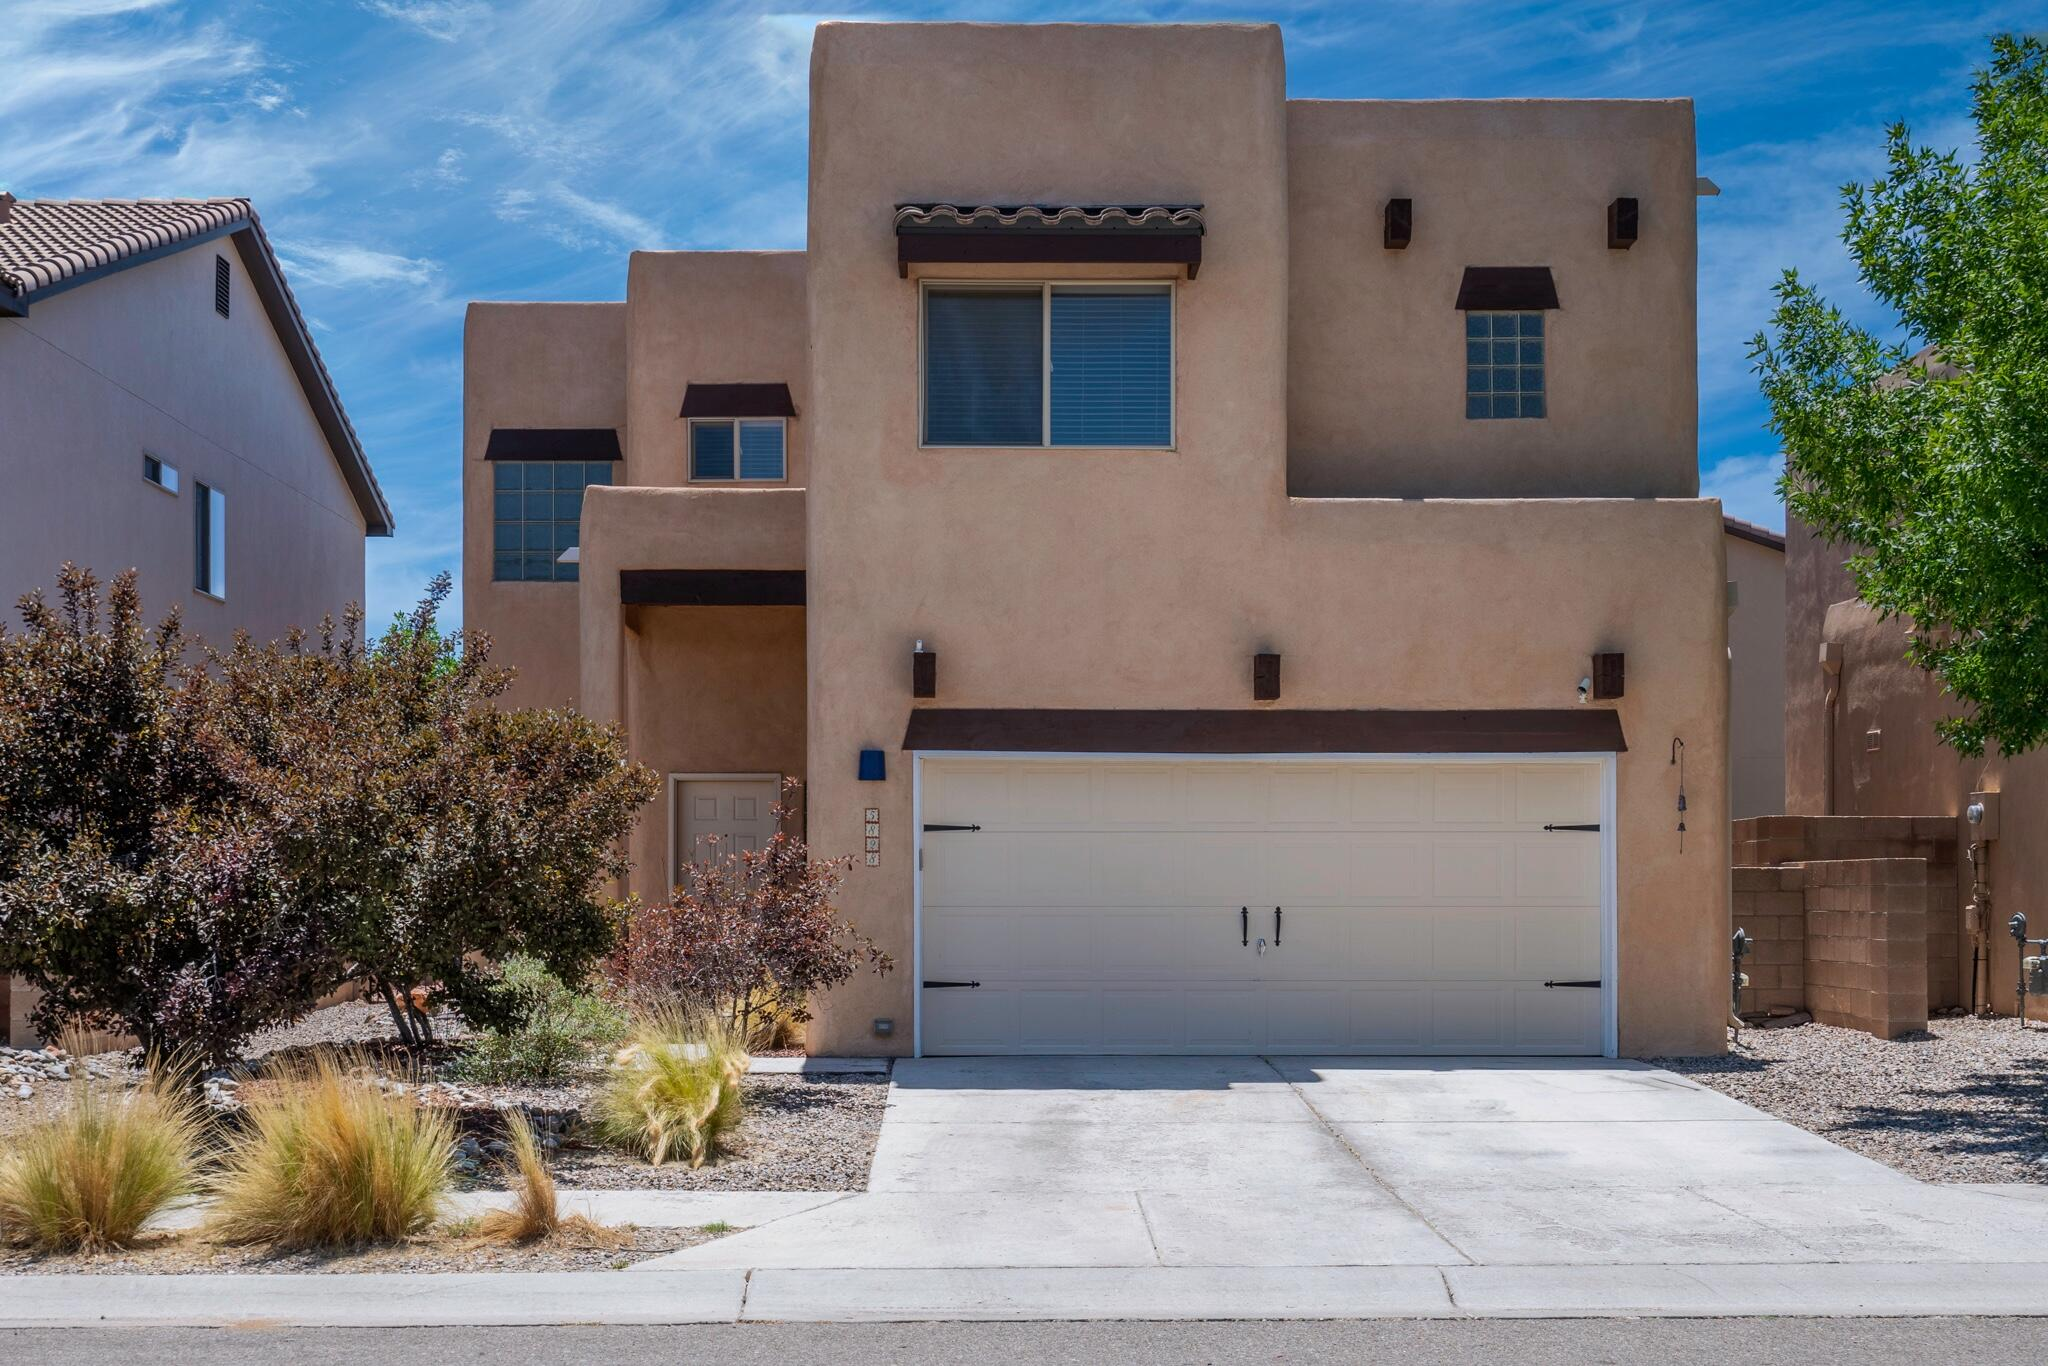 Incredible NW Paradise Hills Location!  Open living room with 2 story ceilings, 3 bedrooms separate from Primary.  New carpet, fresh paint making this home a great turn key property!!  Refrigerated air.   Hurry Hurry!  great price in a great neighborhood!!